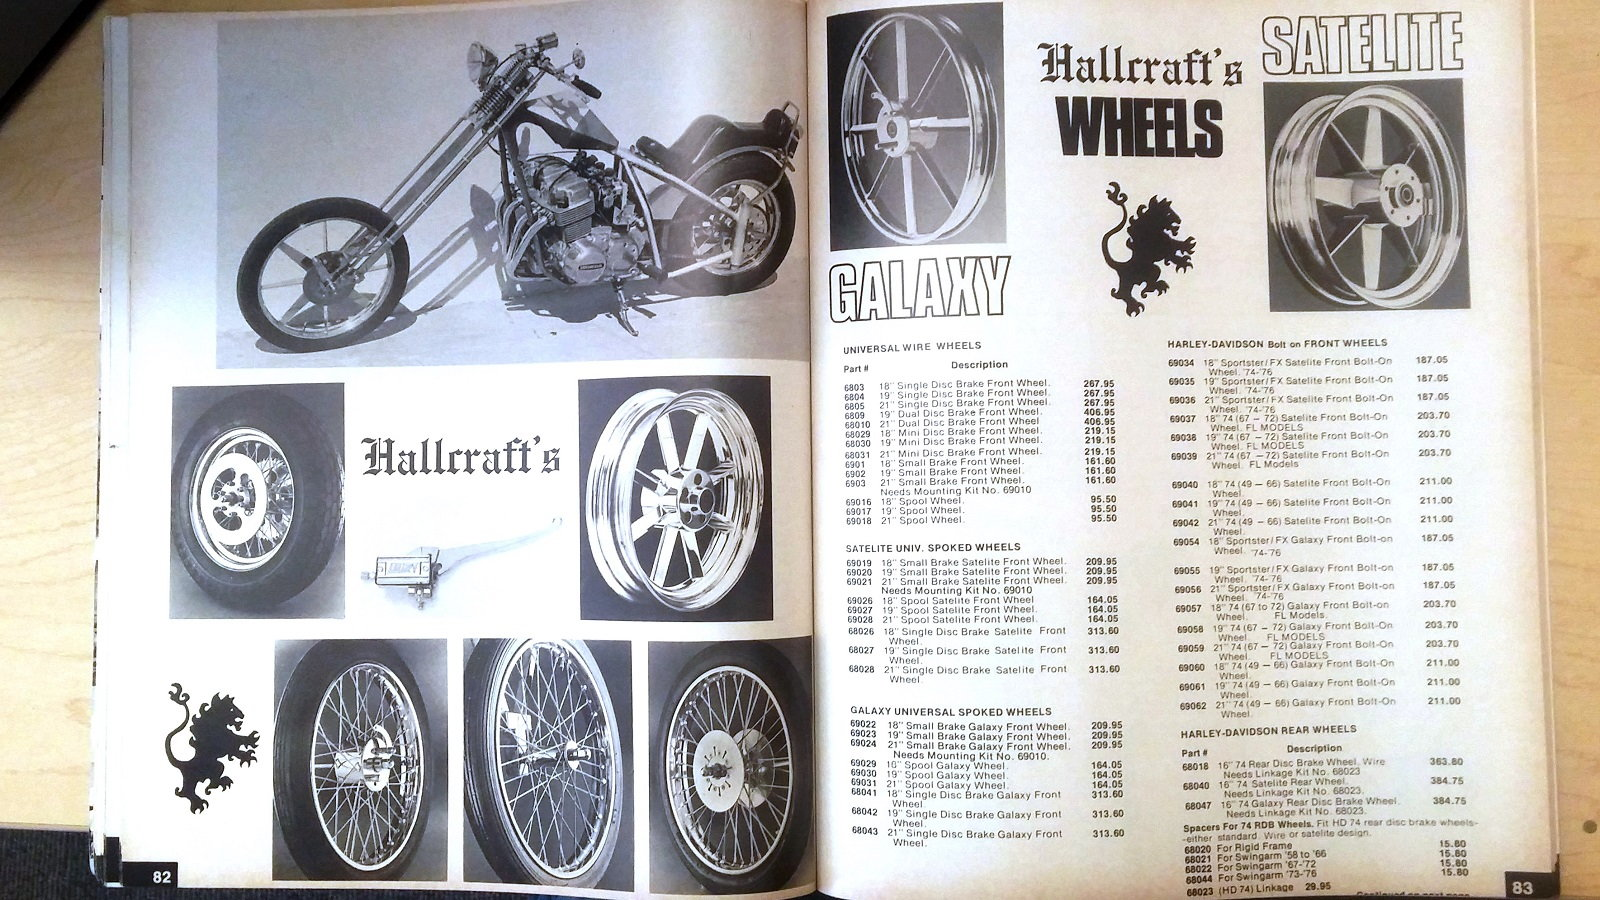 12 Cool Things Learned From The 1977 Jammers Handbook Hdforums Cycle Electrics Panhead Wiring Diagram Hallcrafts Awesome Aftermarket Wheels